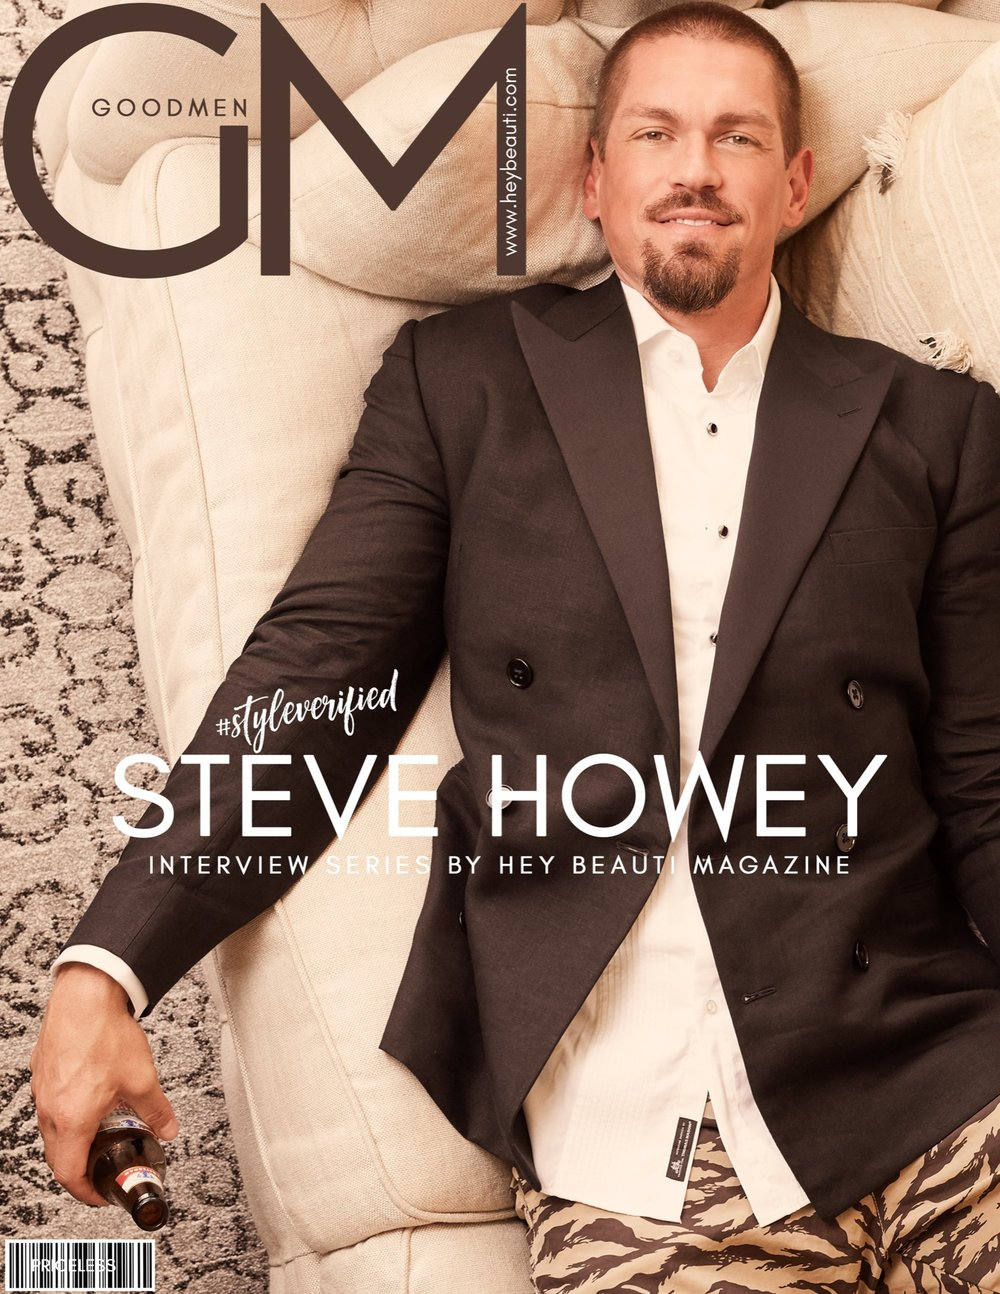 FINAL-STEVE-HOWIE-MAGAZINE-COVER-GOOMEN-5 copy.jpg